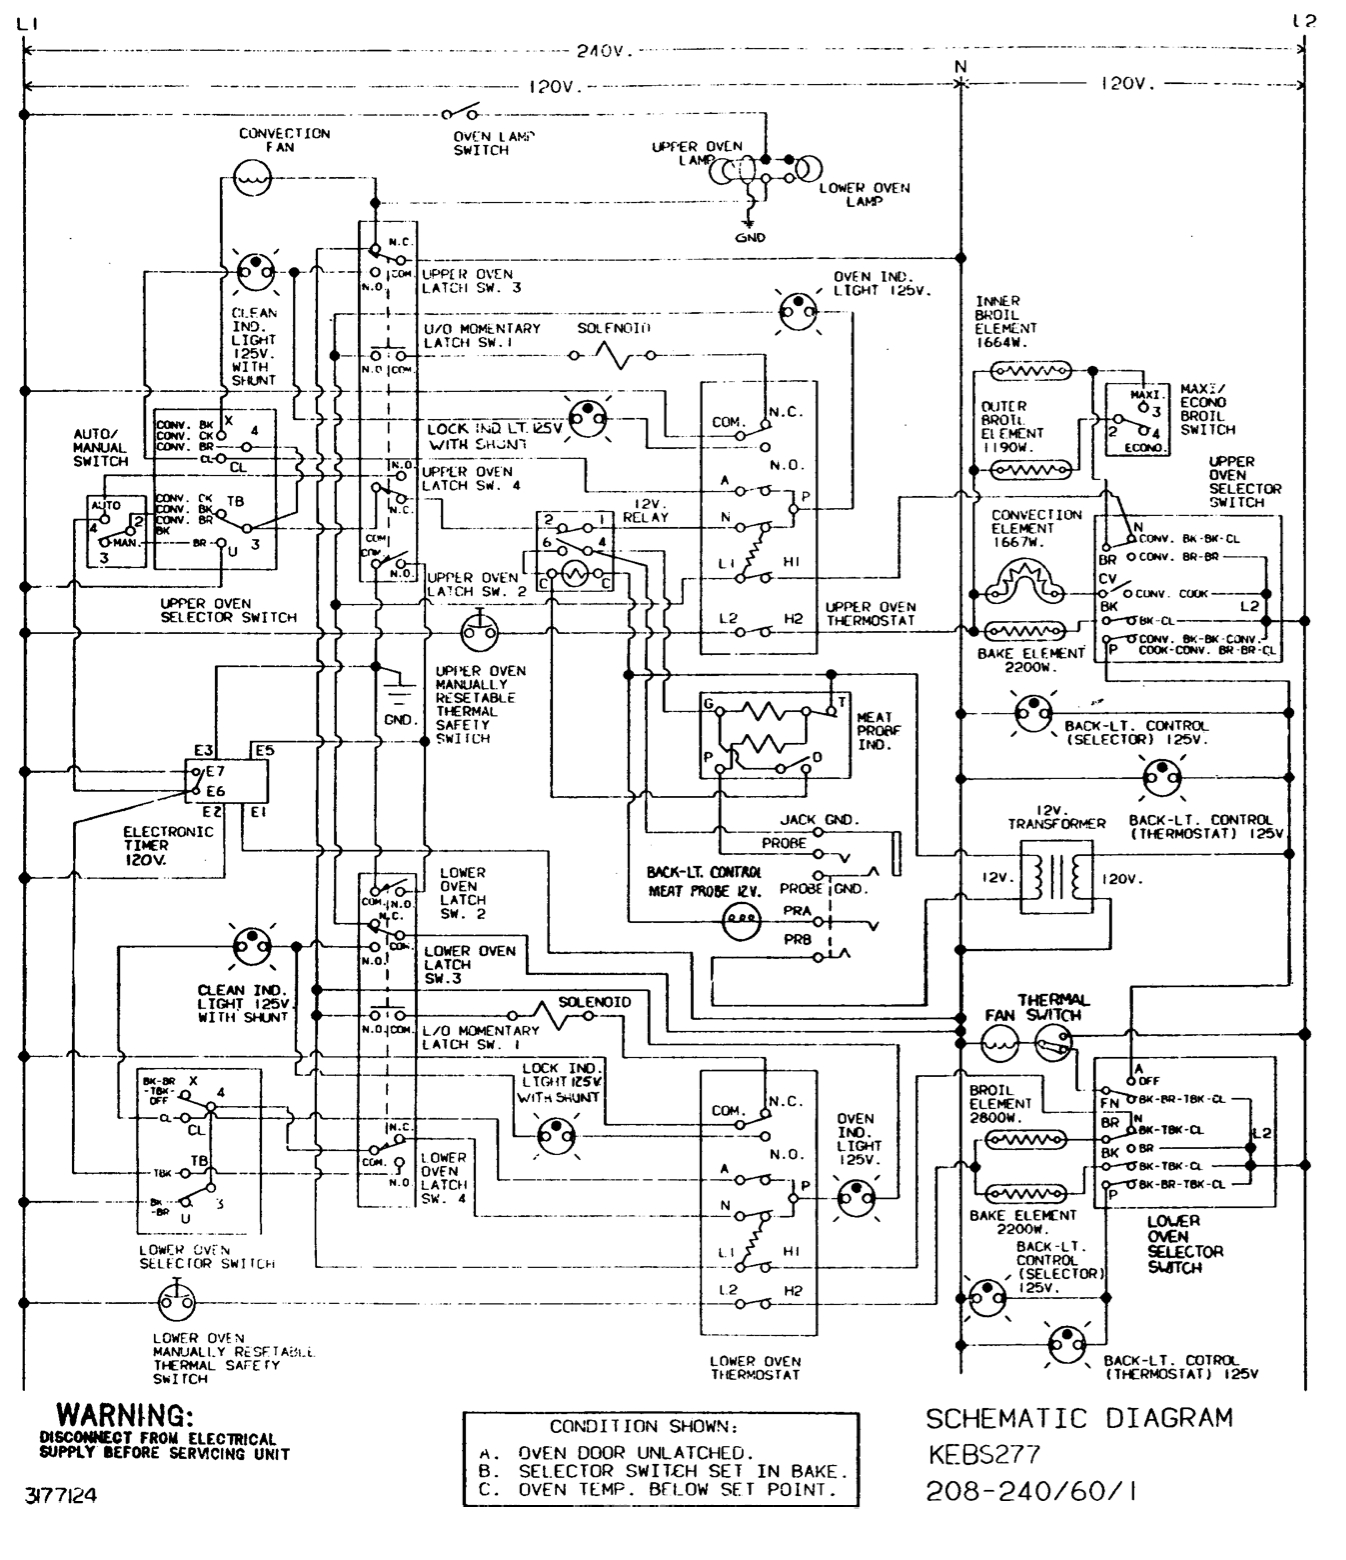 Ge Gas Range Wiring Diagram | Wiring Diagram - Ge Refrigerator Wiring Diagram